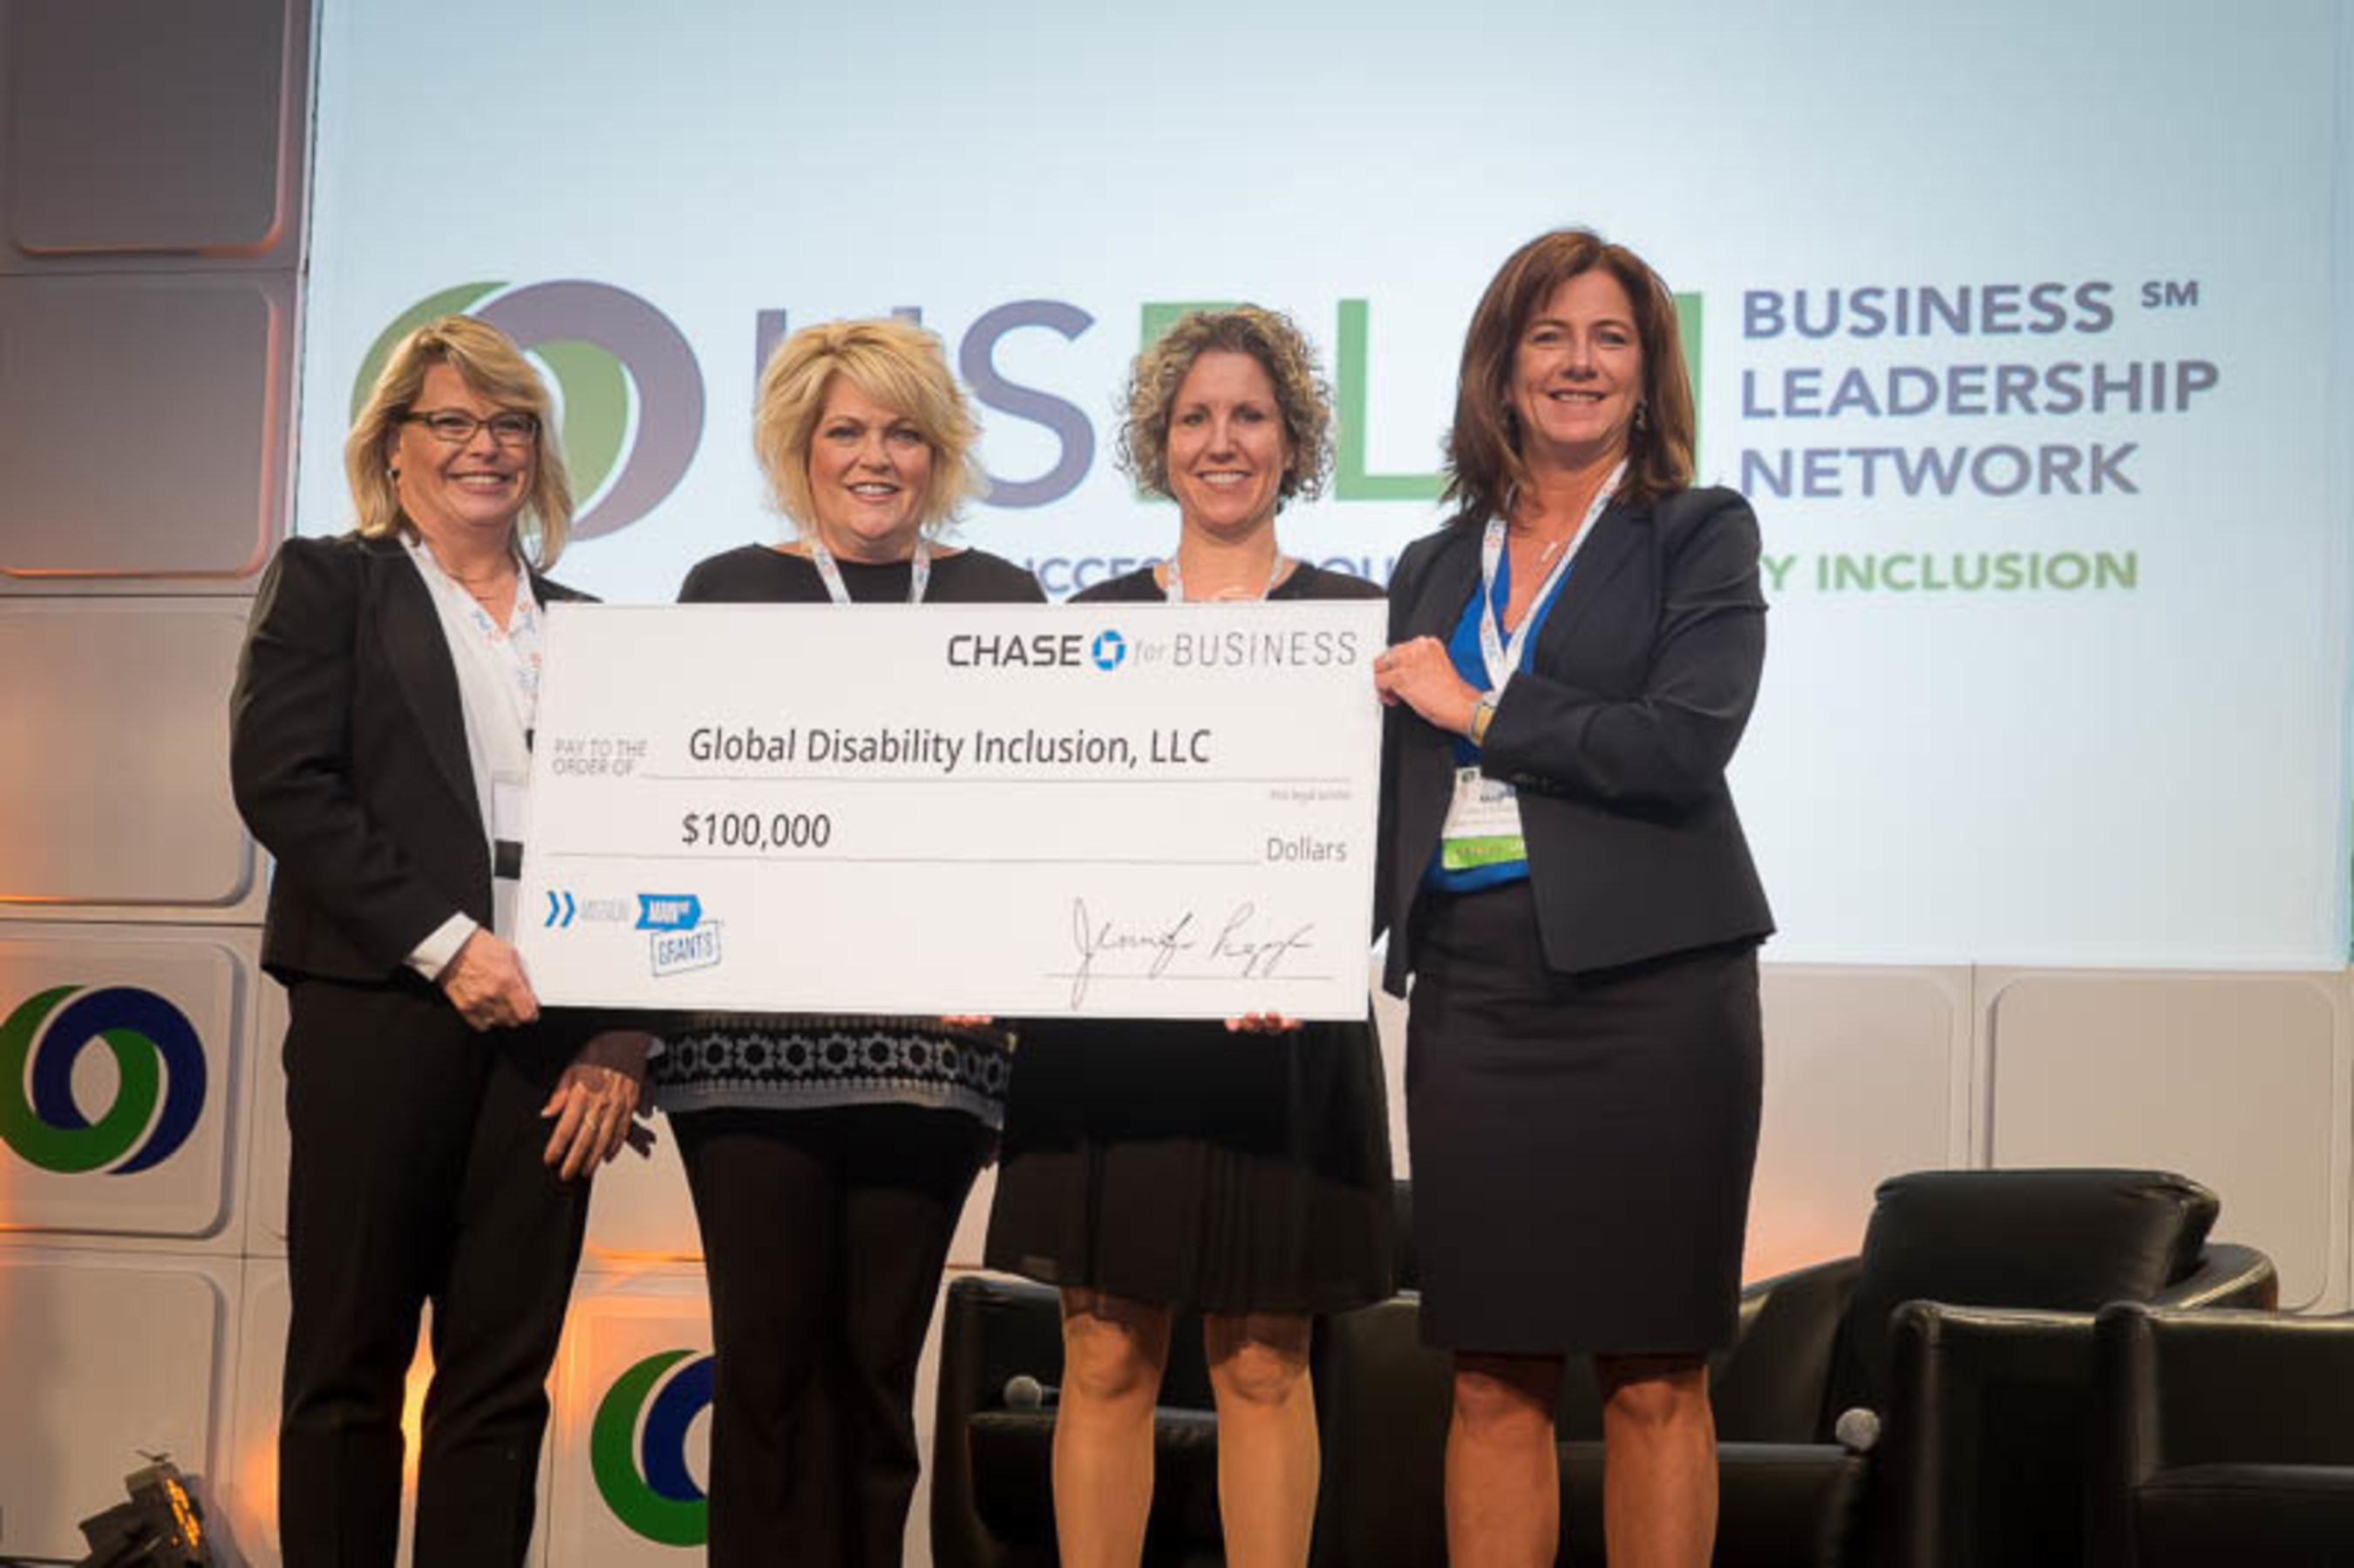 Small business wins $100,000 grant from Chase. From left to right: Deb Russell, Global Disability Inclusion, Valerie Vickers & Elizabeth Daly-Torres, JPMorgan Chase diversity Team, and Meg O'Connell, Global Disability Inclusion. Photo credit: Lawrence Roffee Photography